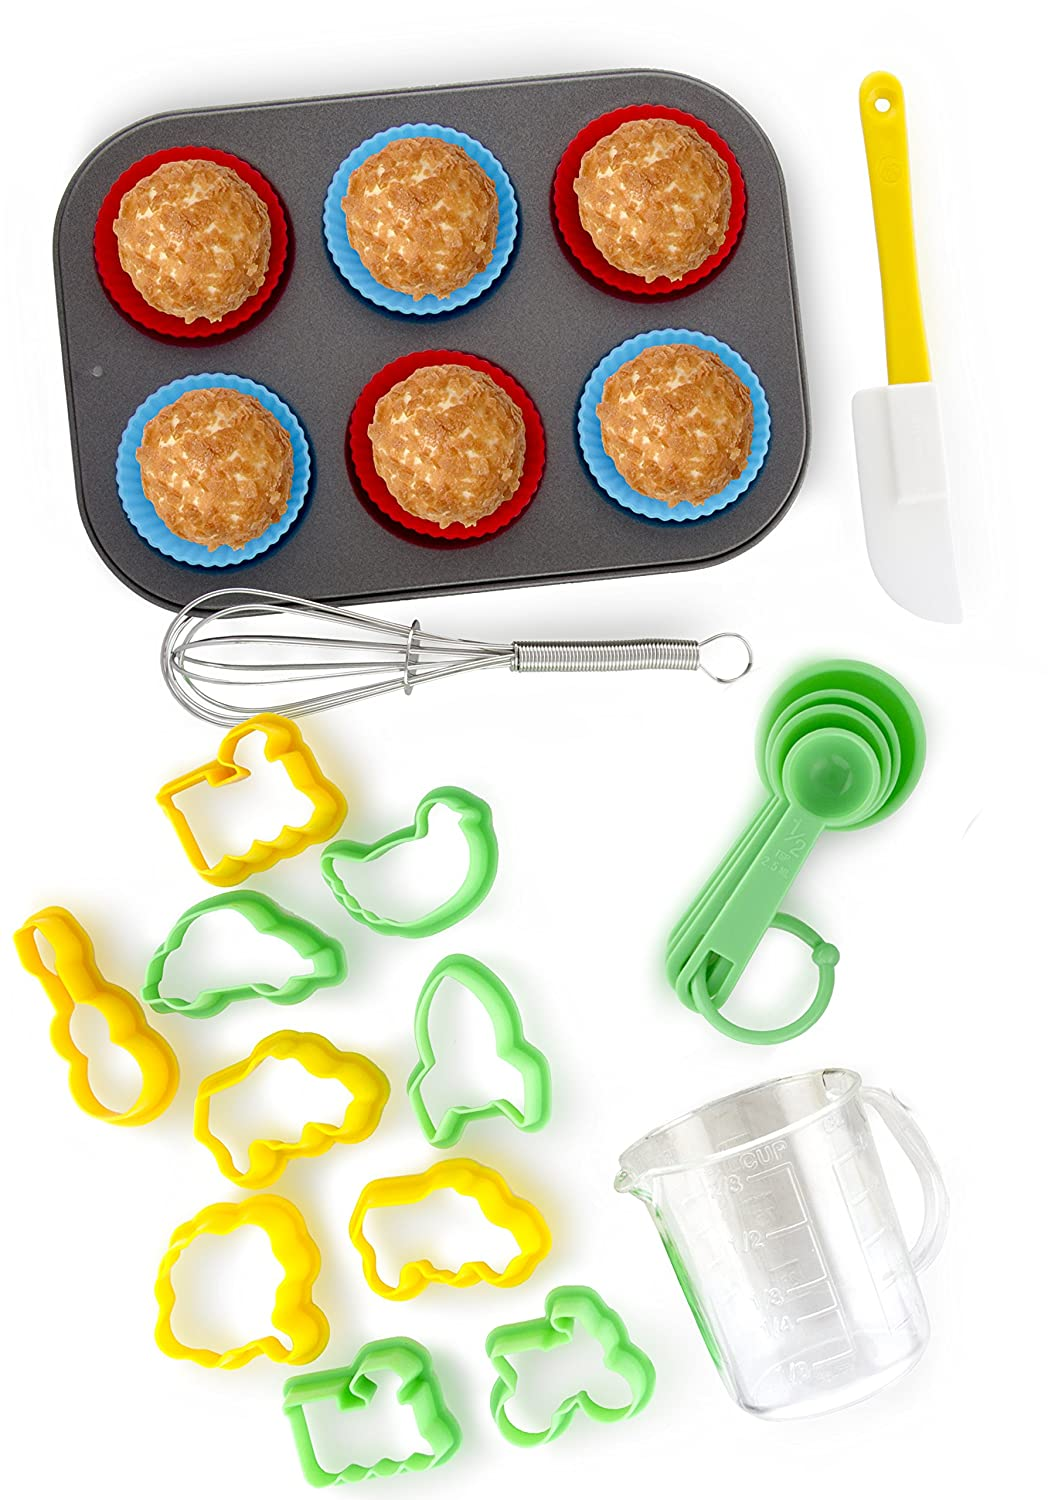 24-Piece Kids Baking Set by Boxiki Kitchen | Muffin Pan, 6 Silicone Cupcake Liners, 10 Cookie Cutters, Spatula, Egg Whisk, Mini Measuring Cup and 4 Measuring Spoons SYNCHKG110758